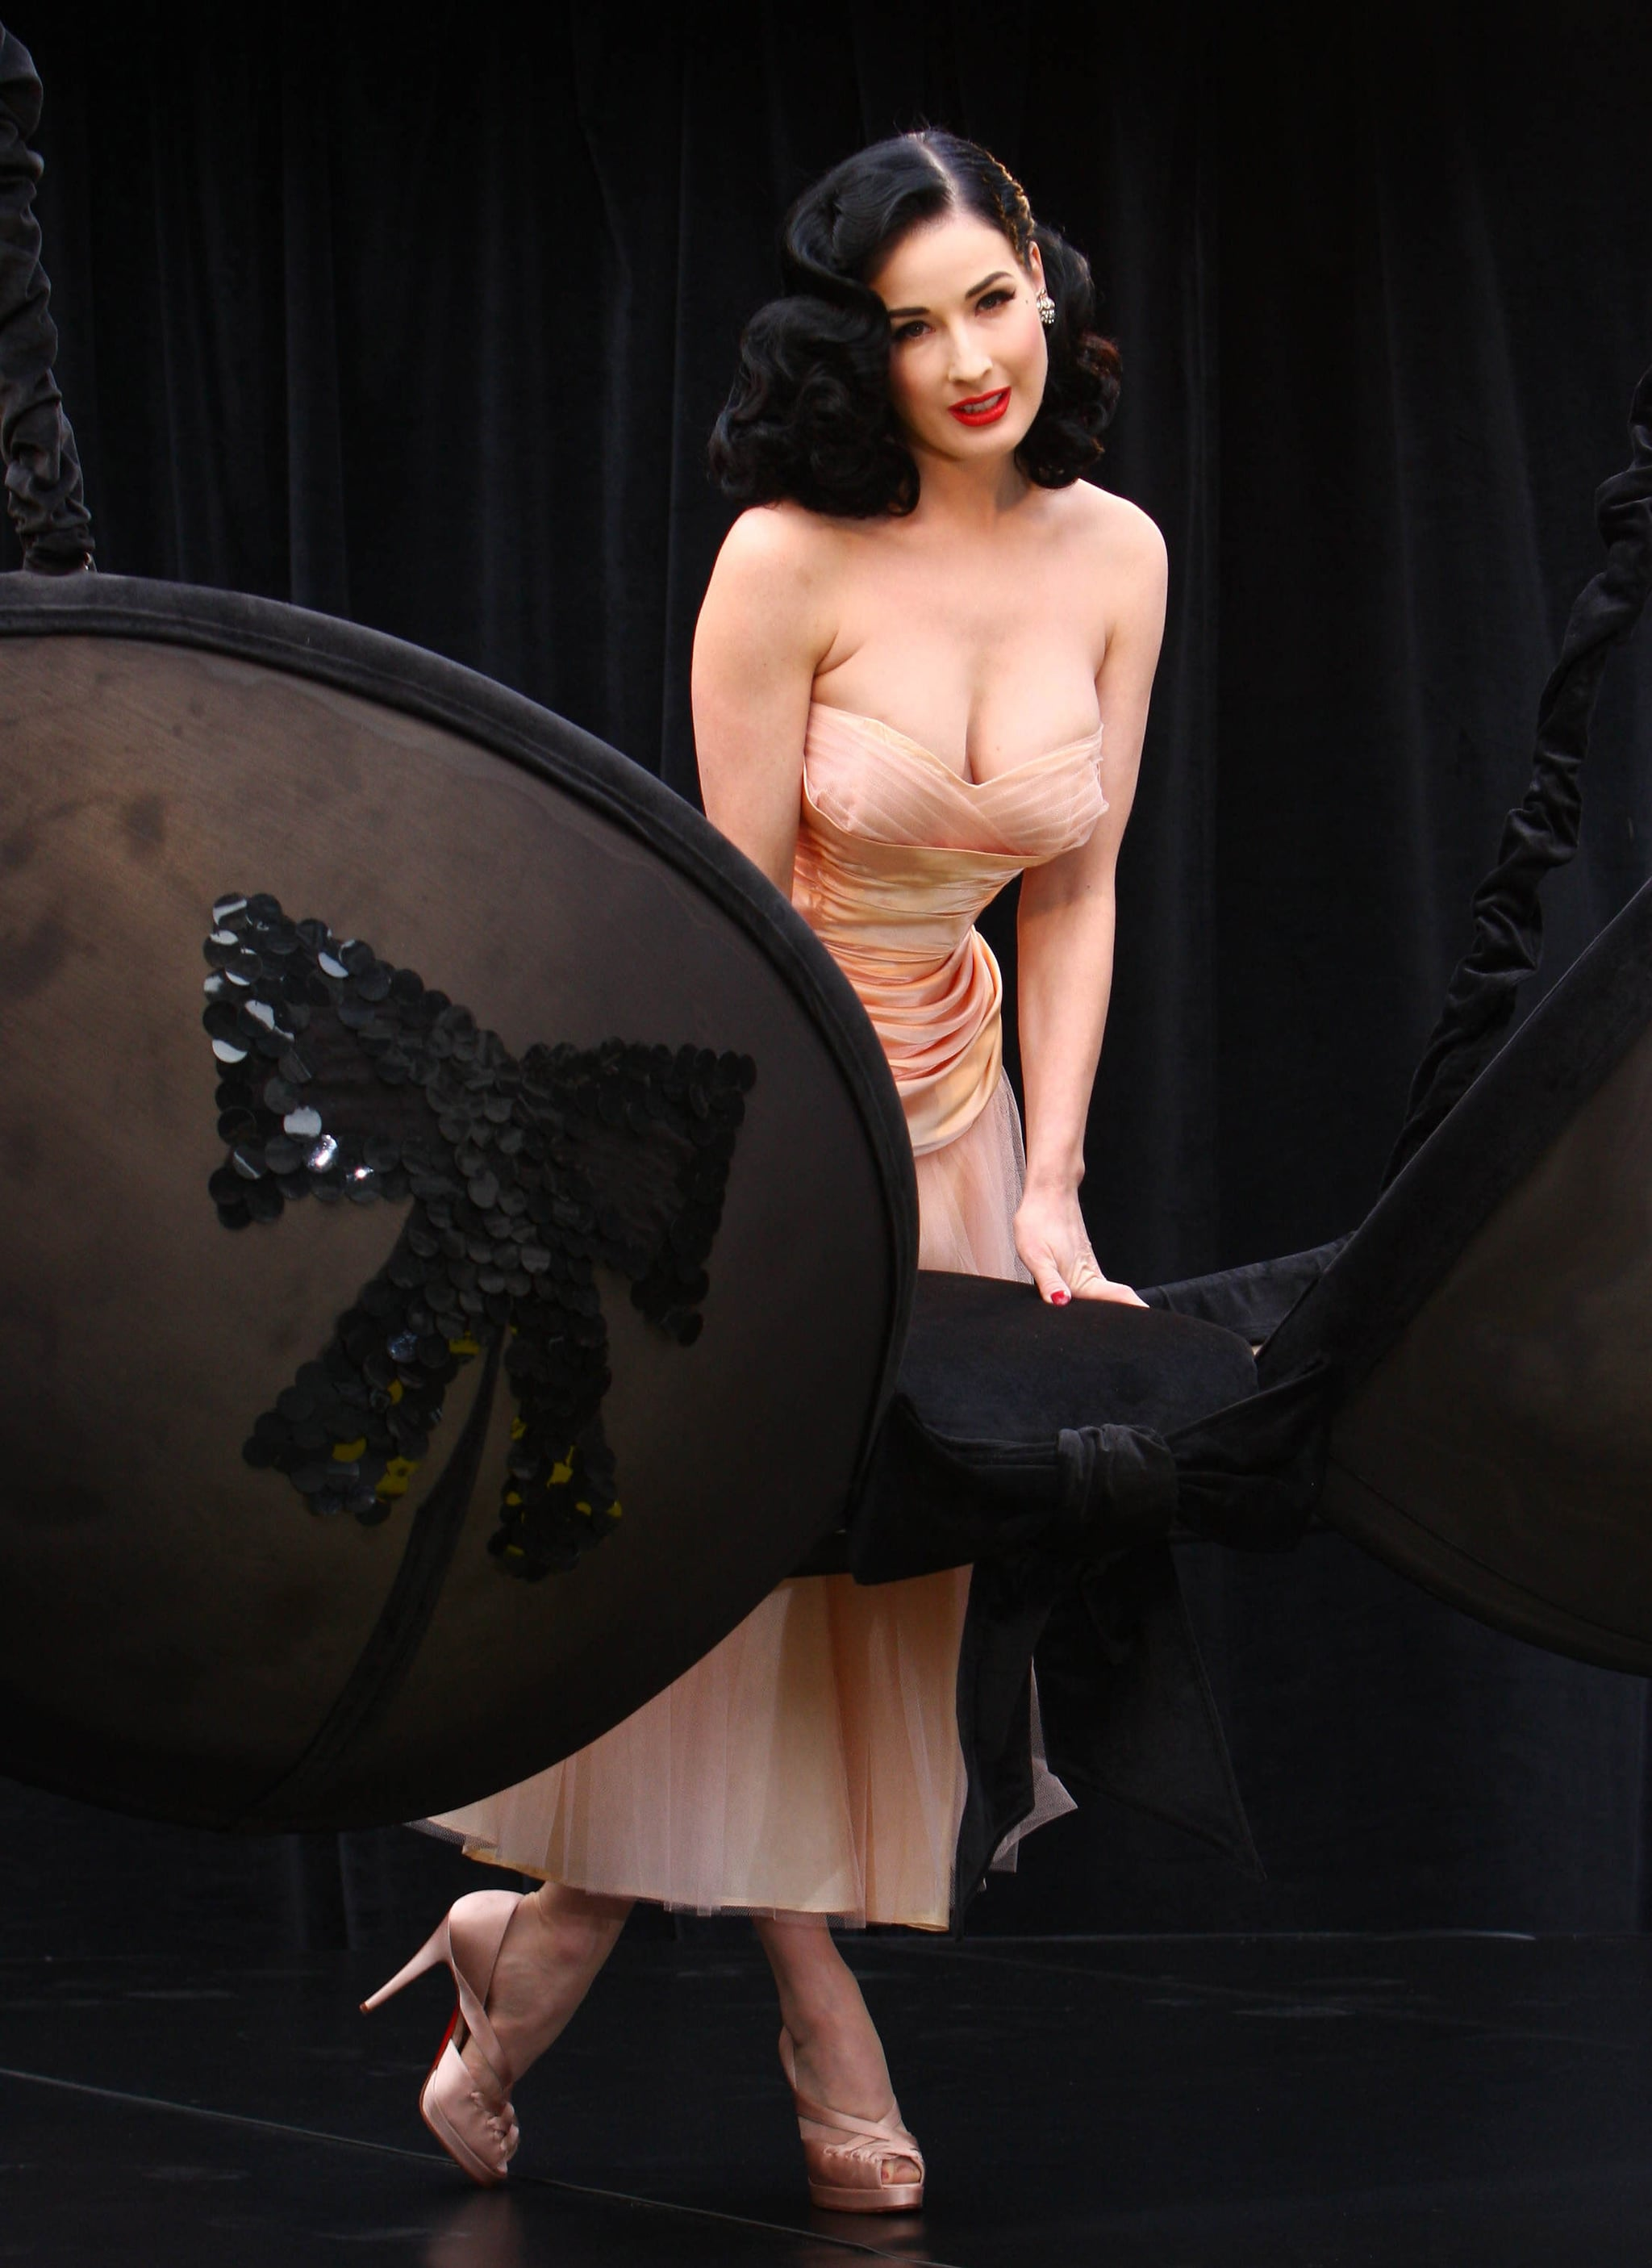 photos of dita von teese promoting her new wonderbra lingerie range in london popsugar. Black Bedroom Furniture Sets. Home Design Ideas